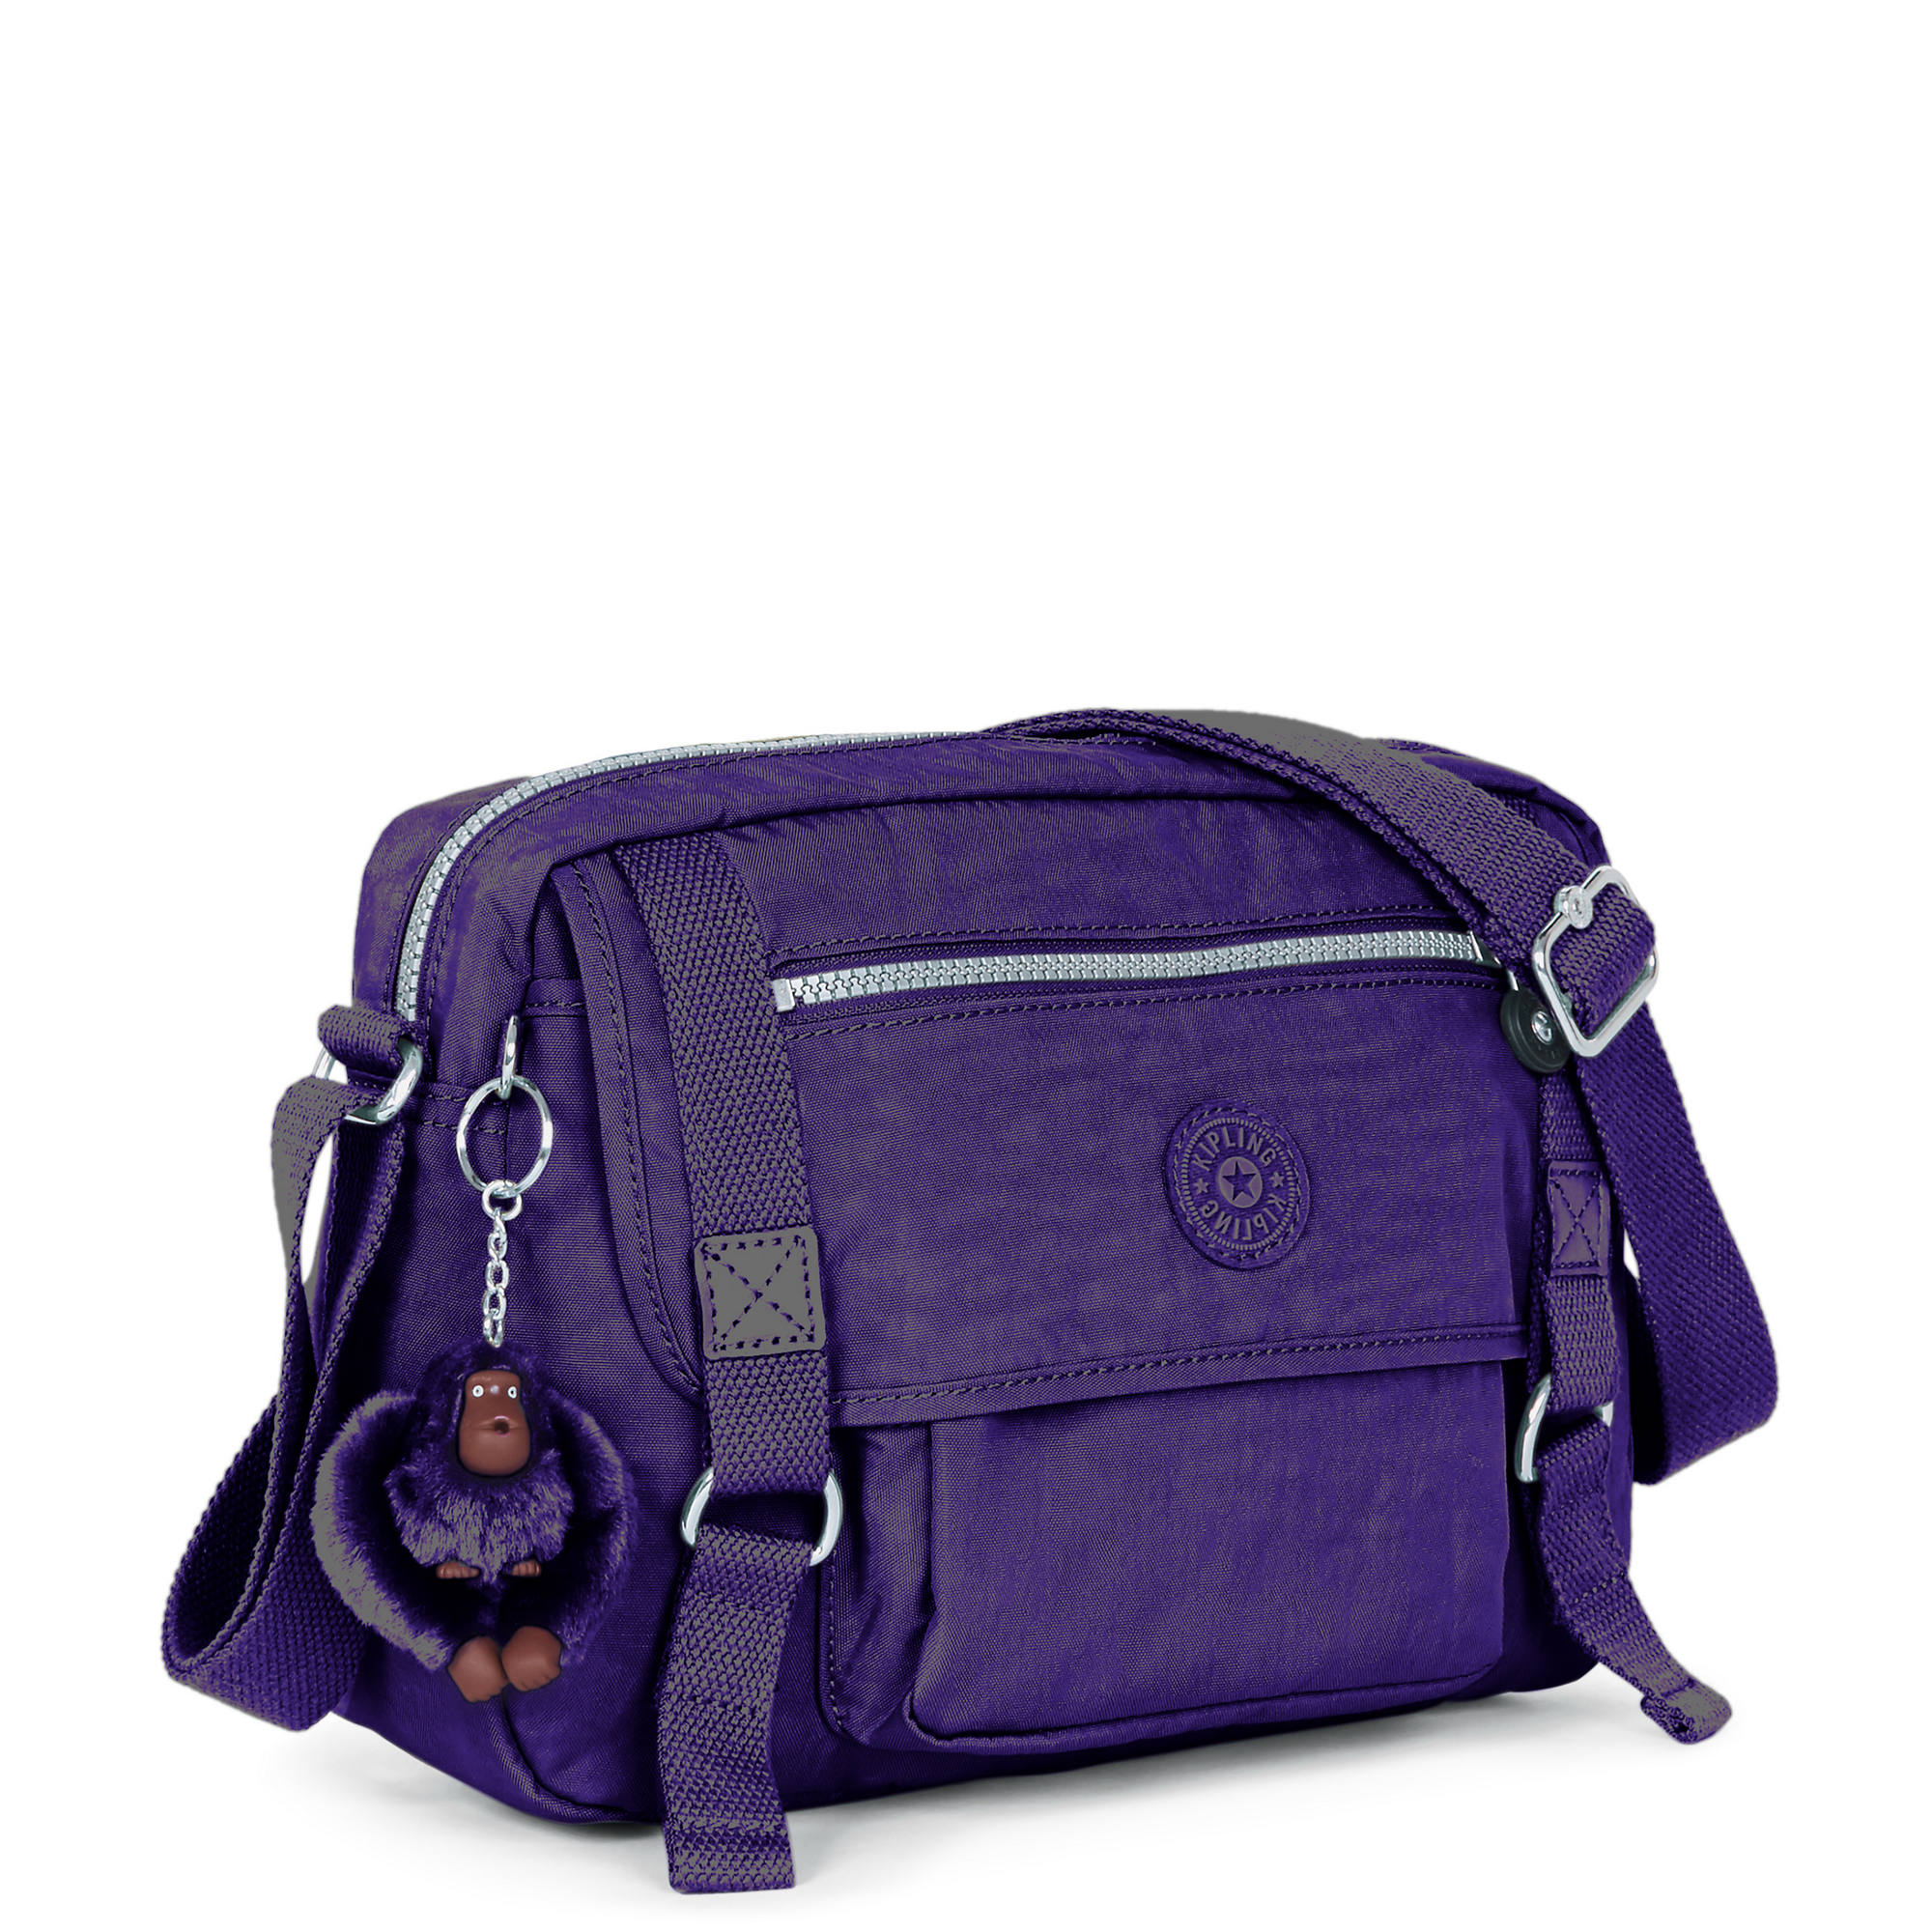 Gracy Crossbody Bag,Berry Blue,large-zoomed